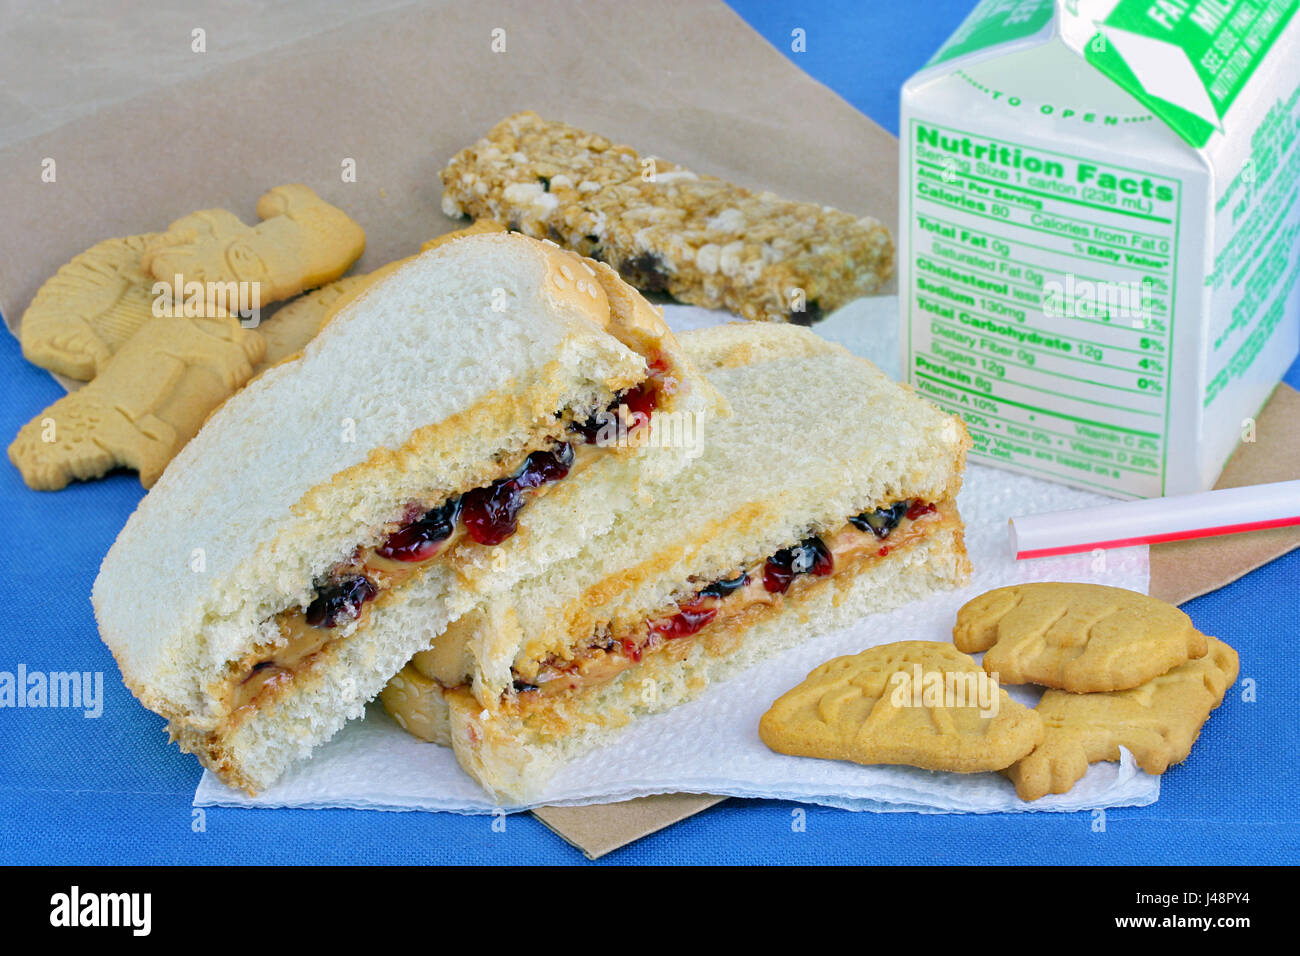 Jelly Bag Stock Photos Amp Jelly Bag Stock Images Alamy